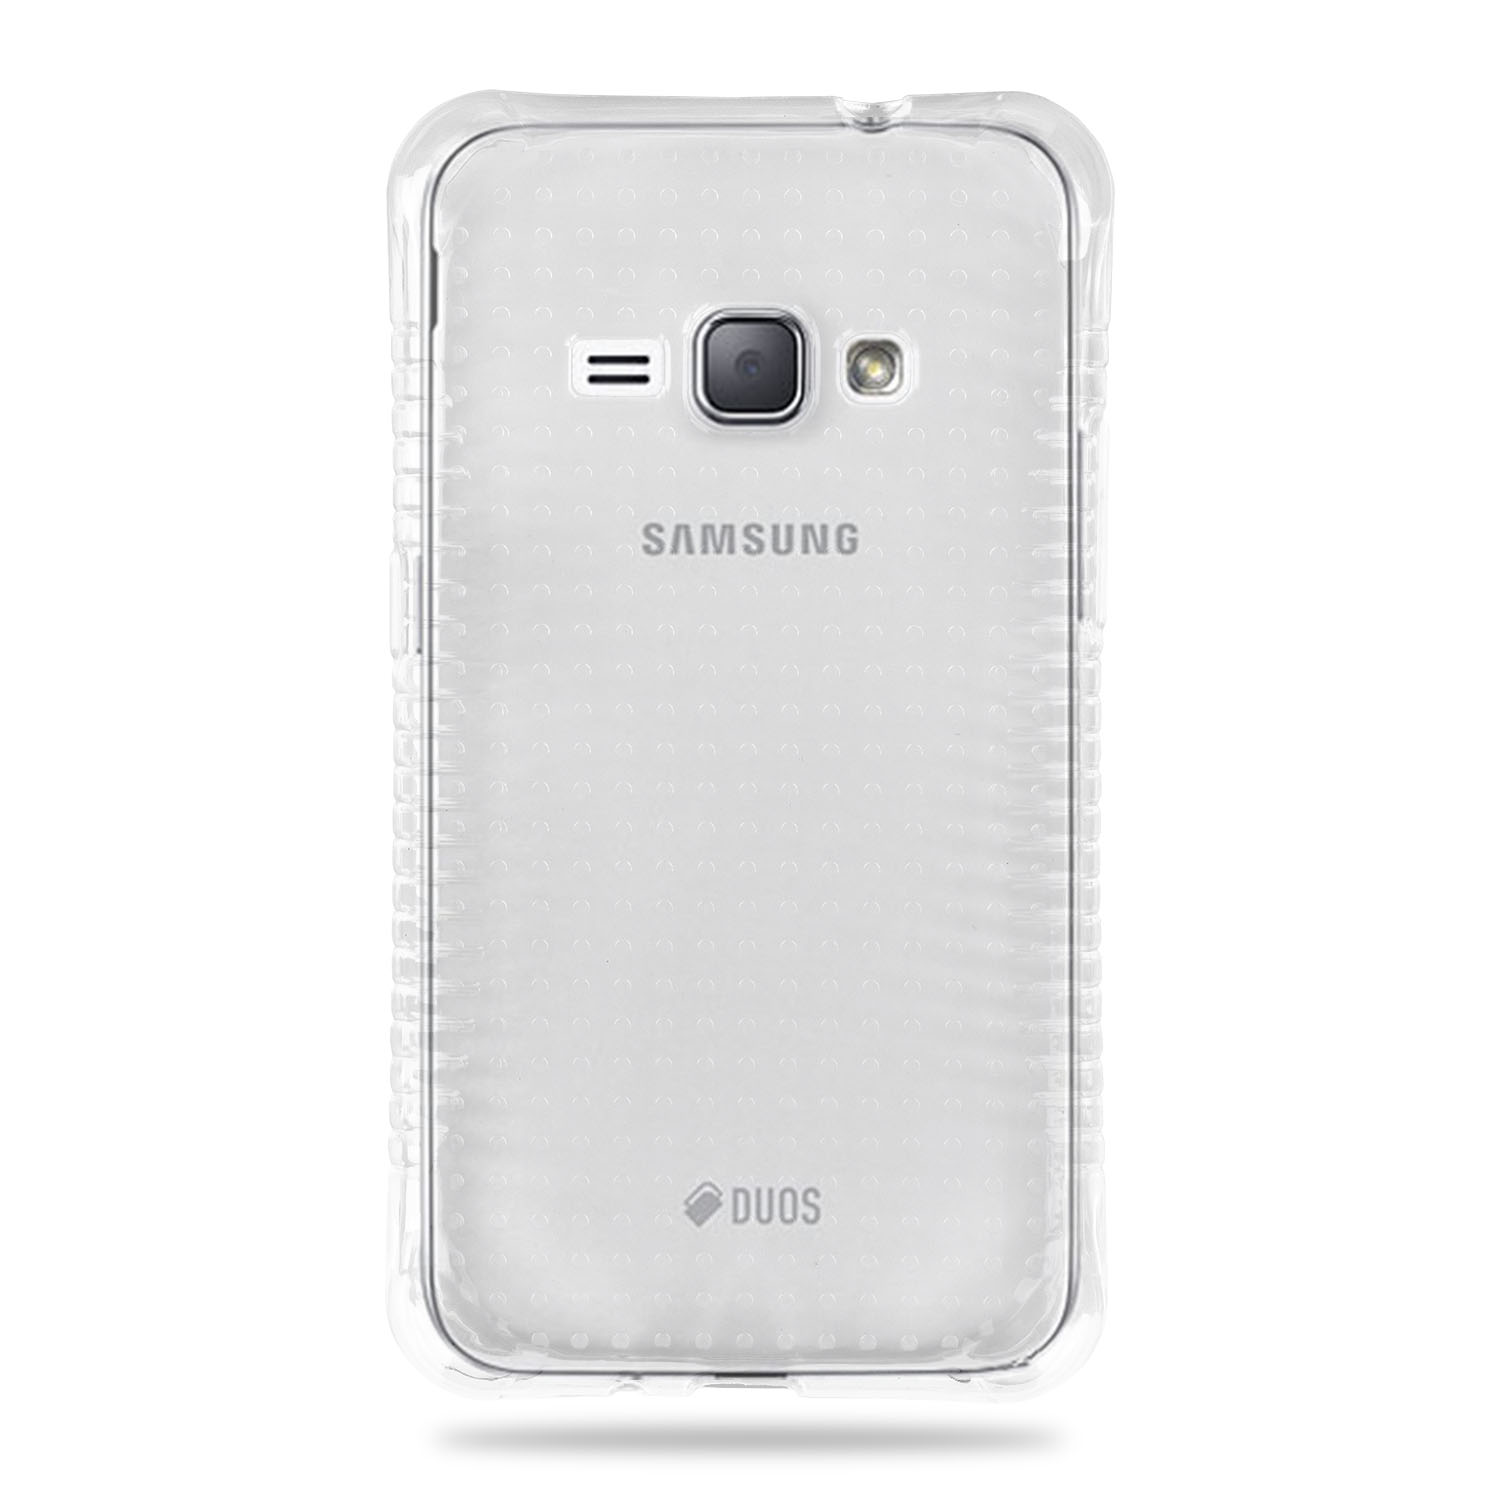 Samsung Galaxy J1 2016 Clear Shockproof Air Pocket Case / Anti-Slip Grip iPhone Shockproof Air Pocket / Side Anti-Slip Grip